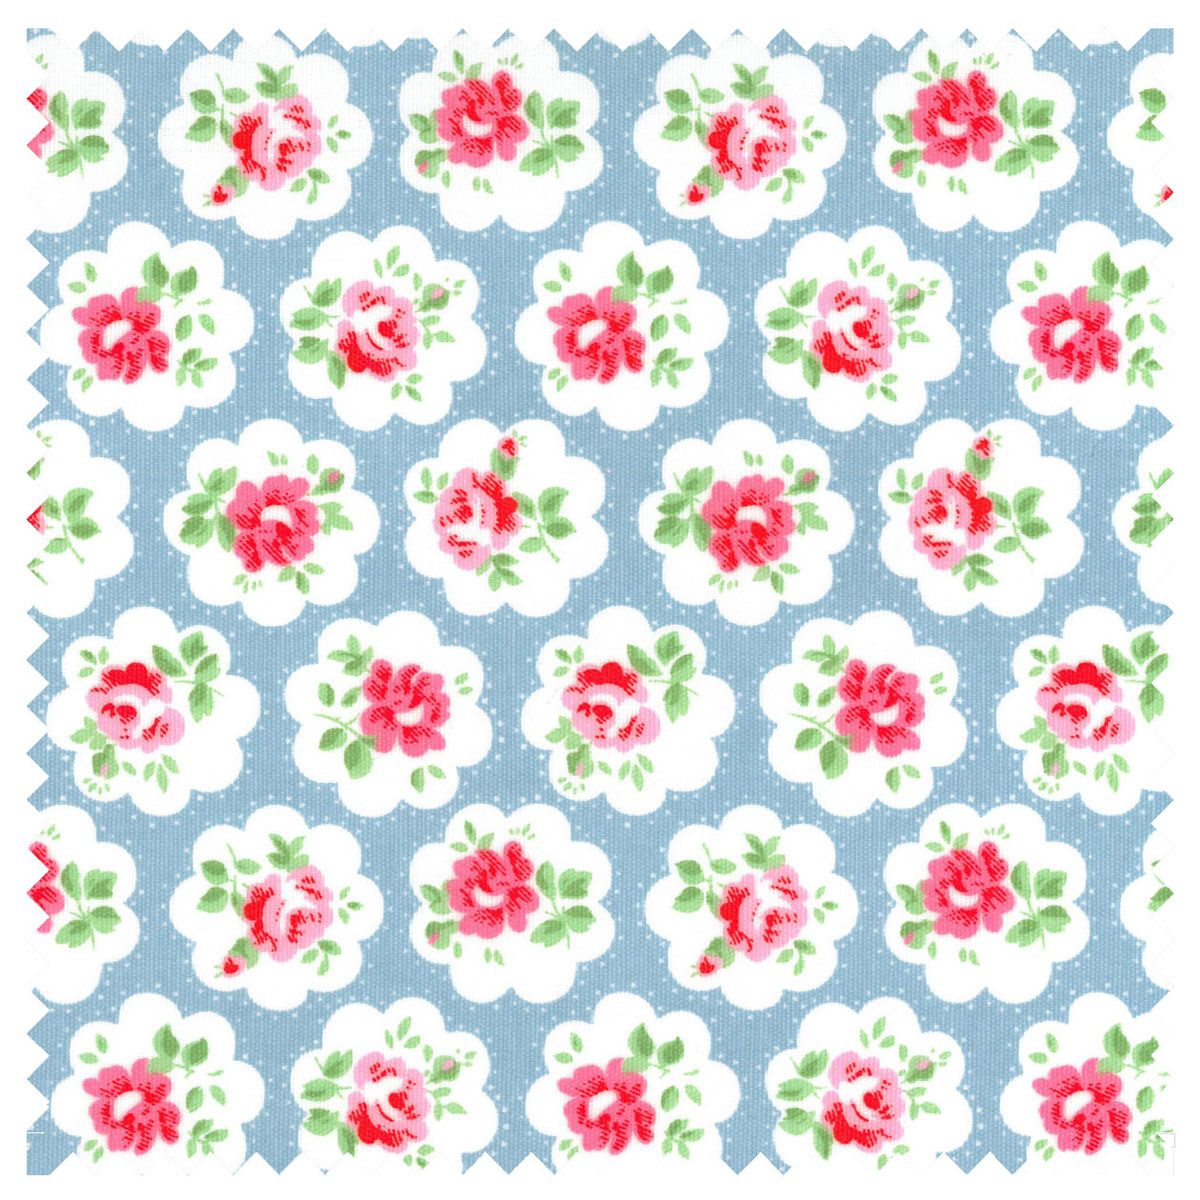 Nail Arts By Rozemist Cath Kidston Vintage Inspired: This Cloth Is Great For Making An Apron With, Just Wipes